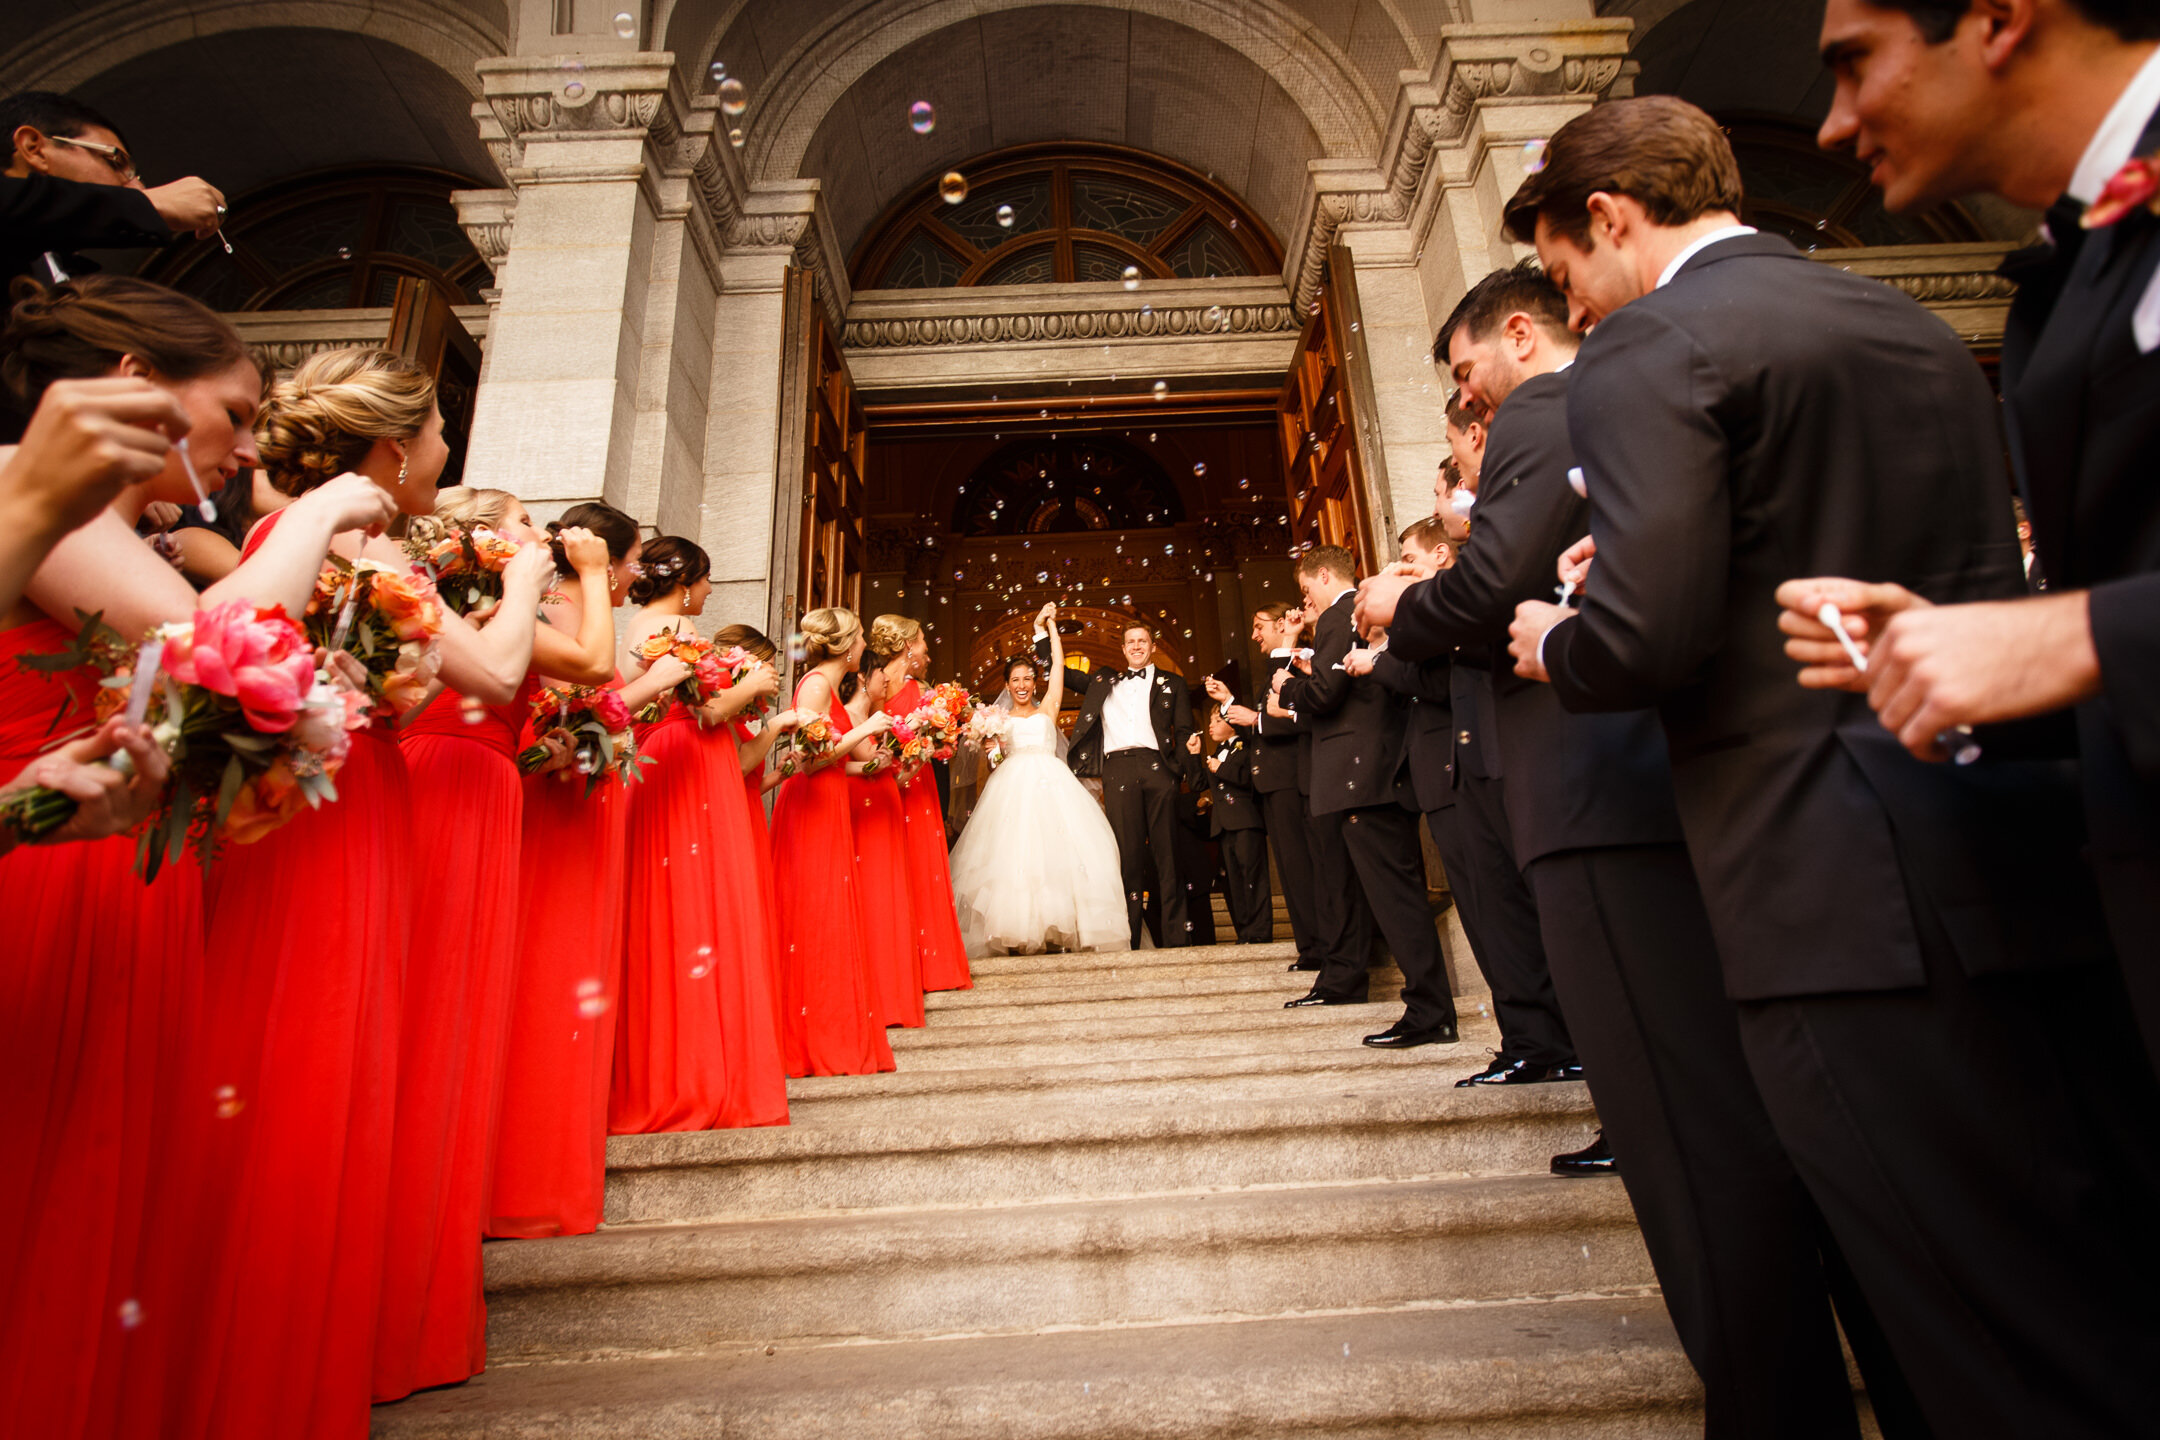 a million amazing moments - Videography that complements our photography